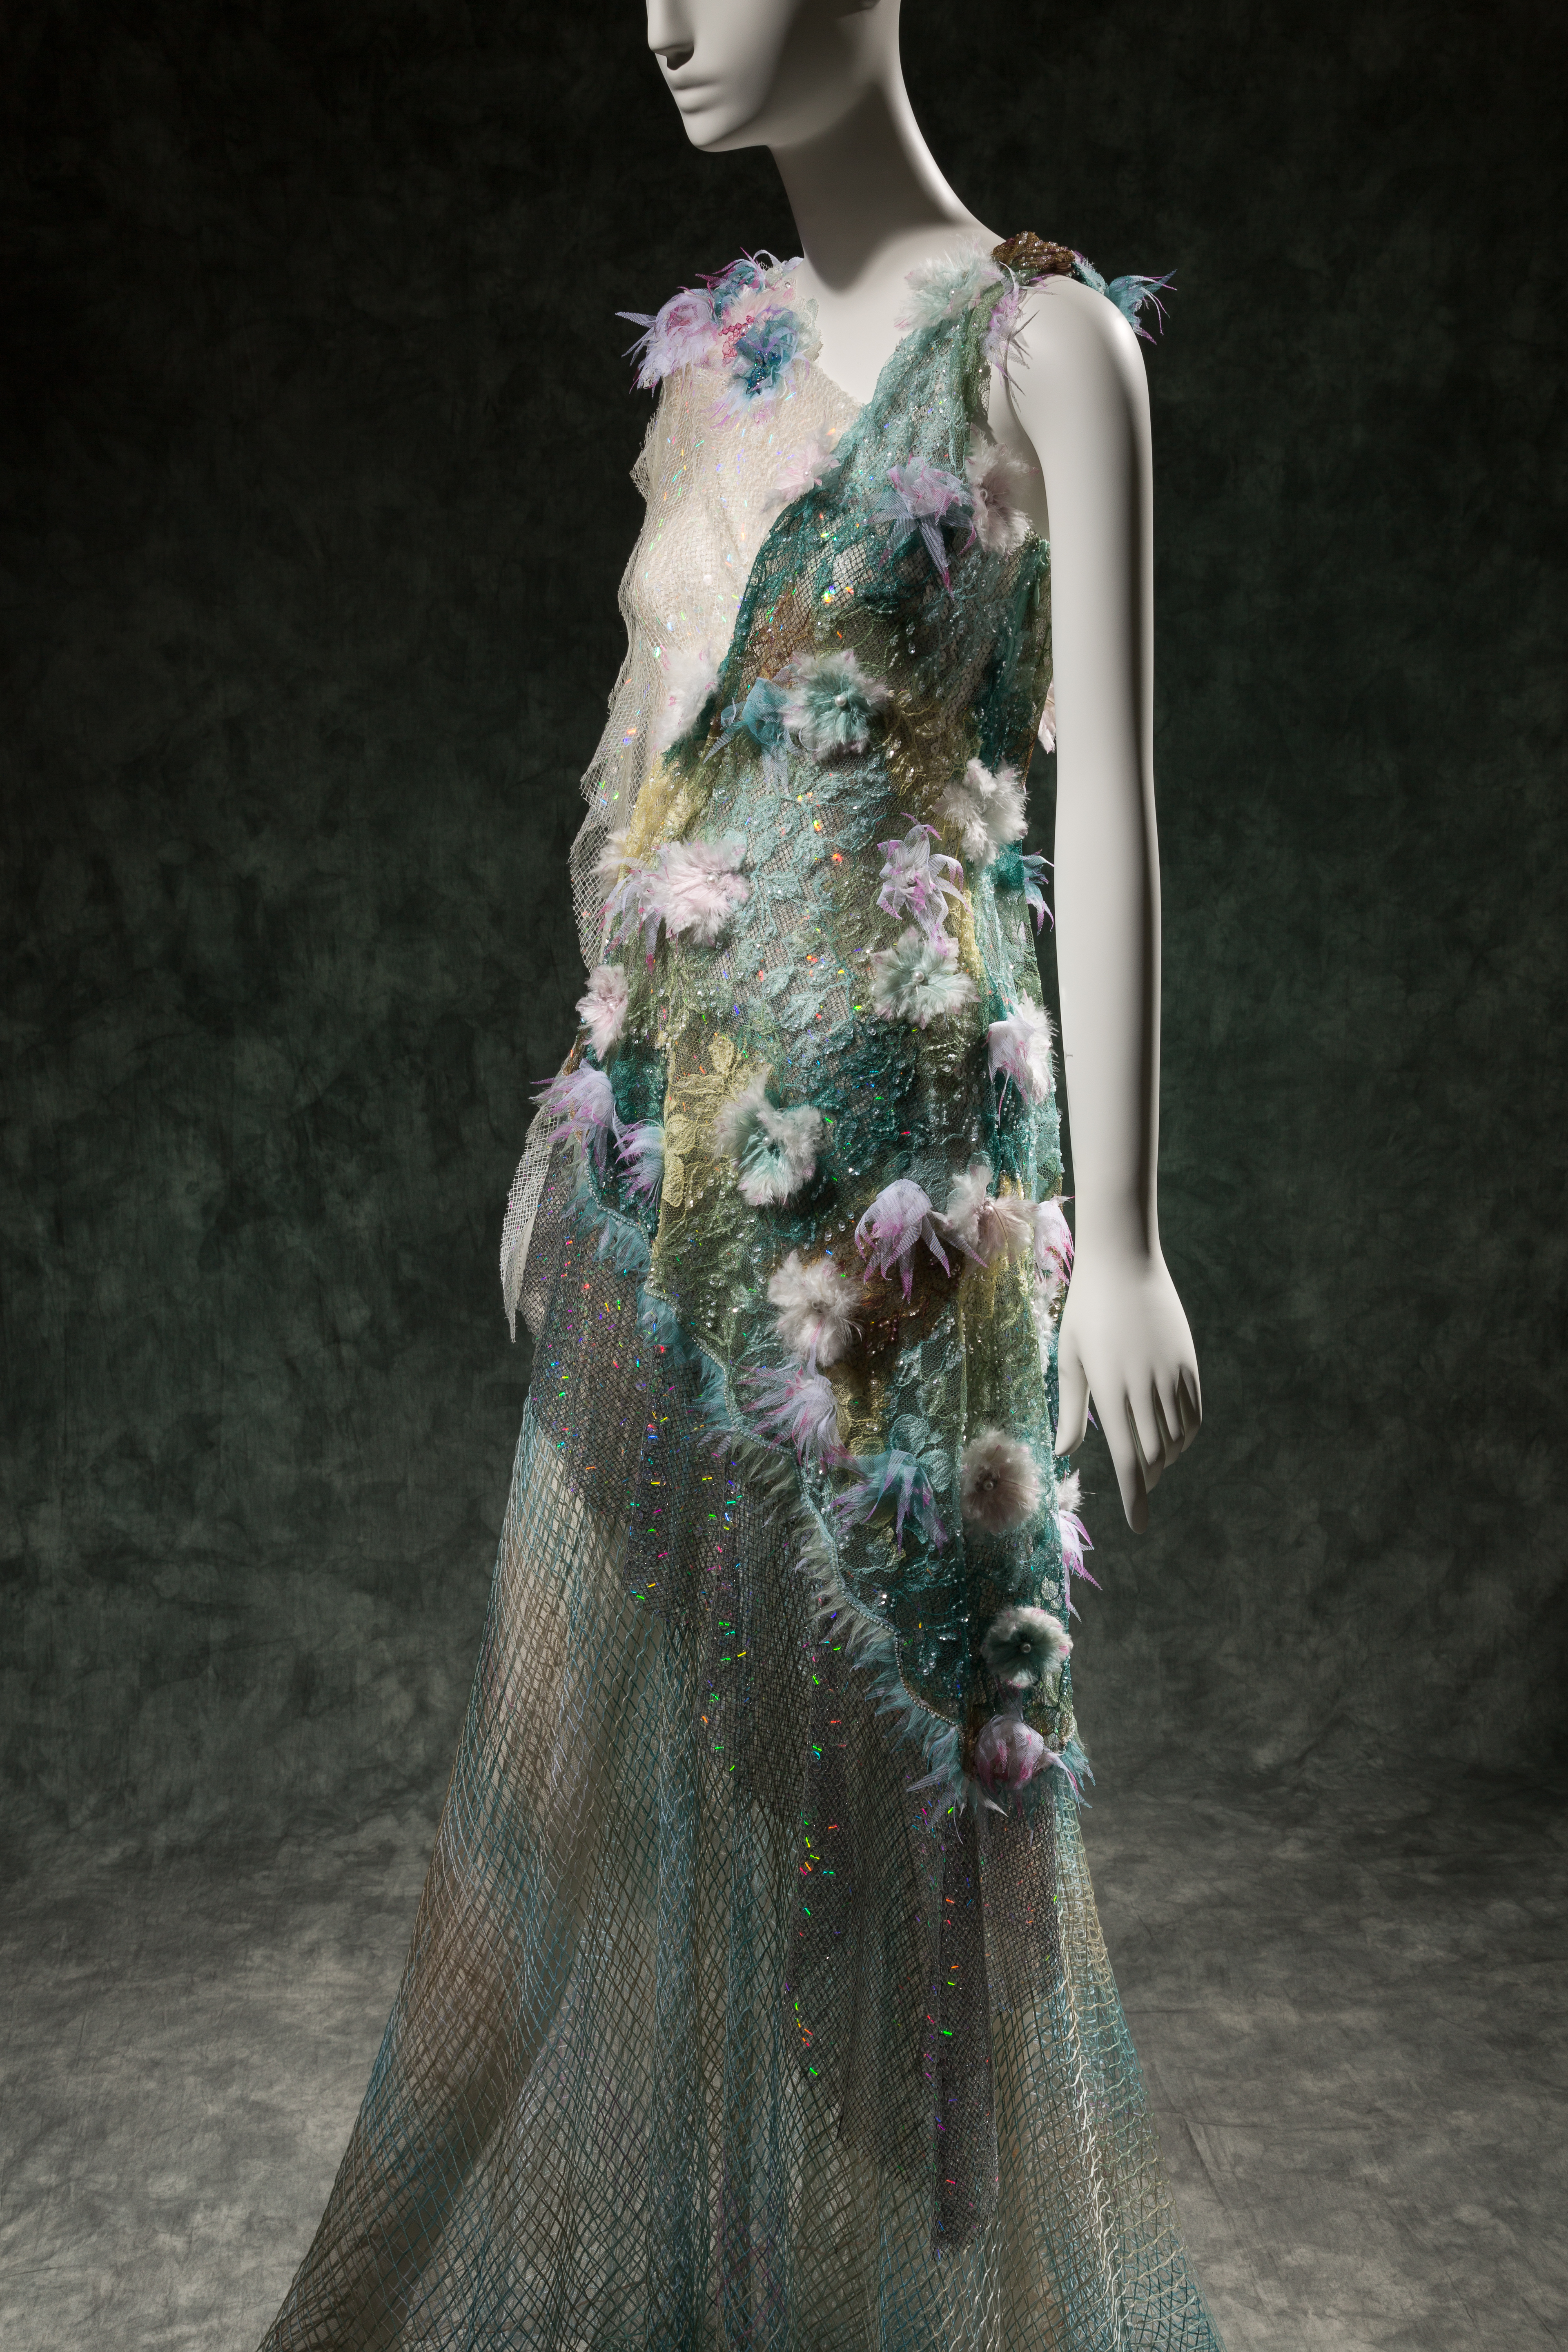 Rodarte, dress, spring 2015, USA. The Museum at FIT, Photograph Courtesy The Museum at FIT